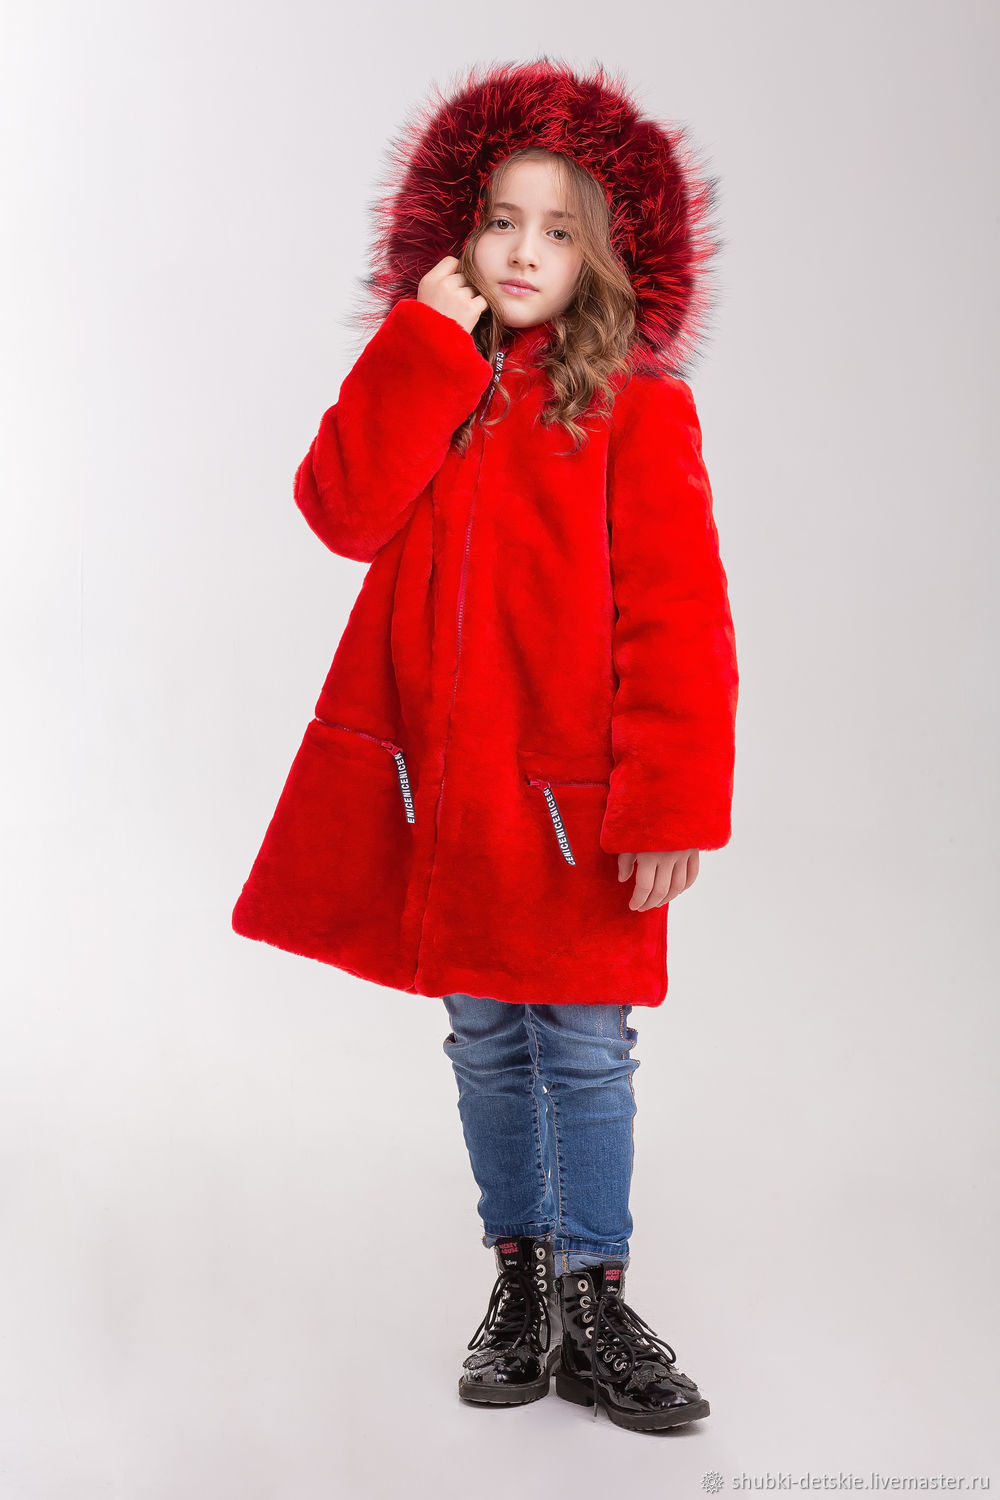 055386a490aa Buy The red fur coat of Mouton · Clothes for Girls handmade. The red fur  coat of Mouton. Kids fur coat.